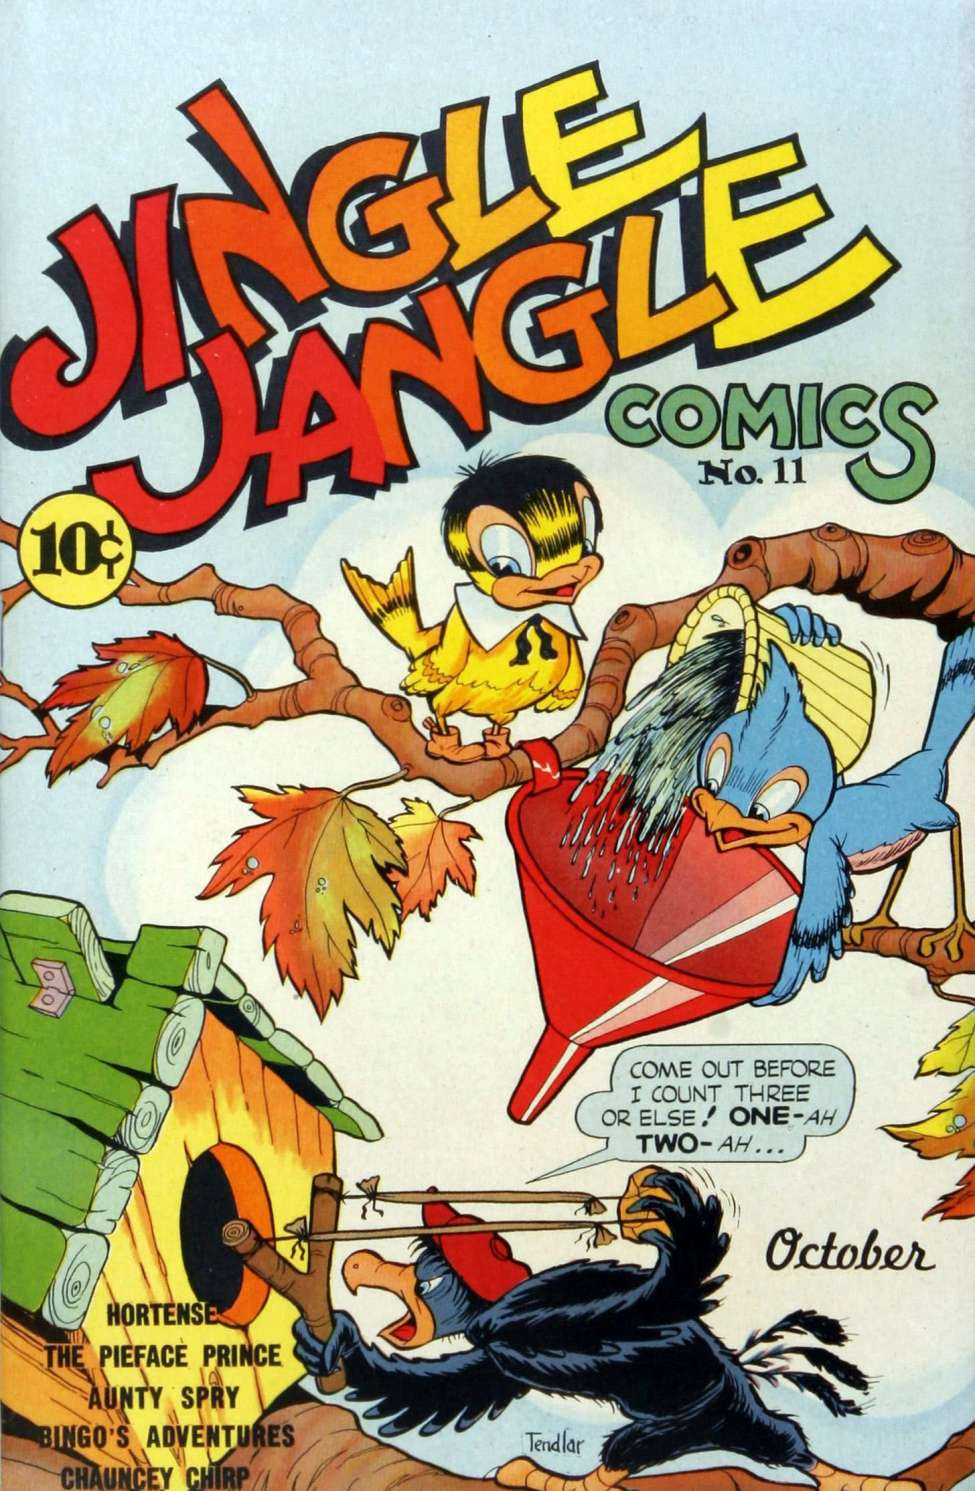 Comic Book Cover For Jingle Jangle Comics #11